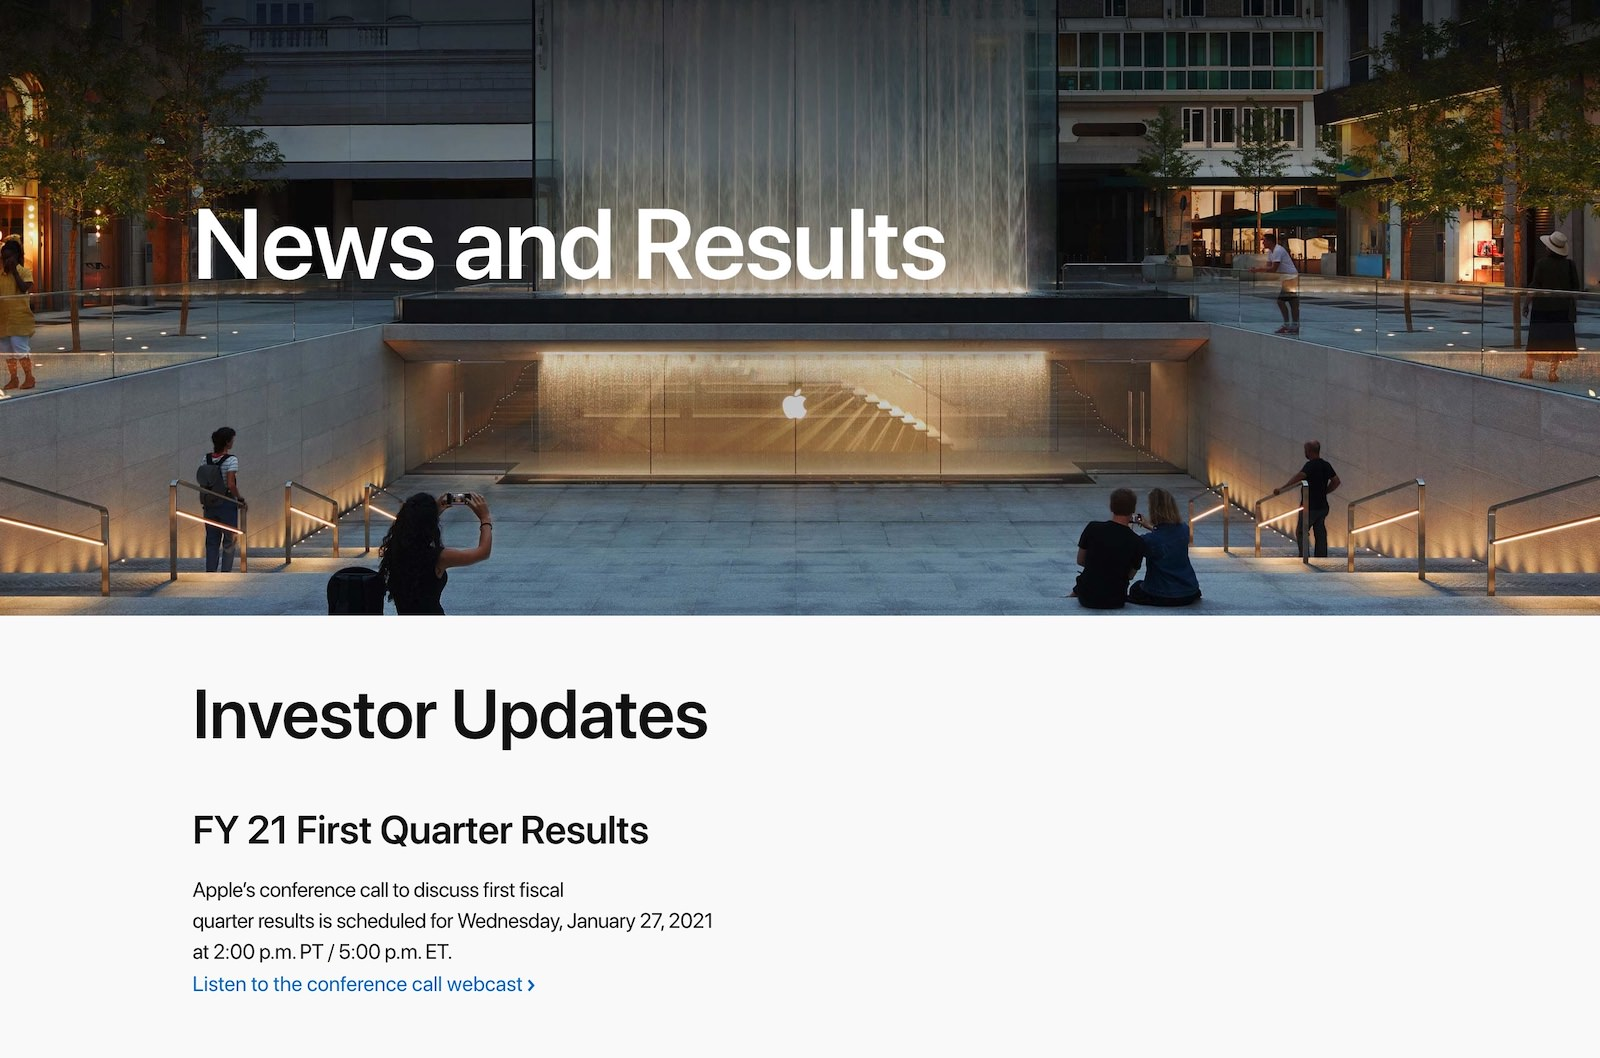 Apple financial results for 2021 1st quarter